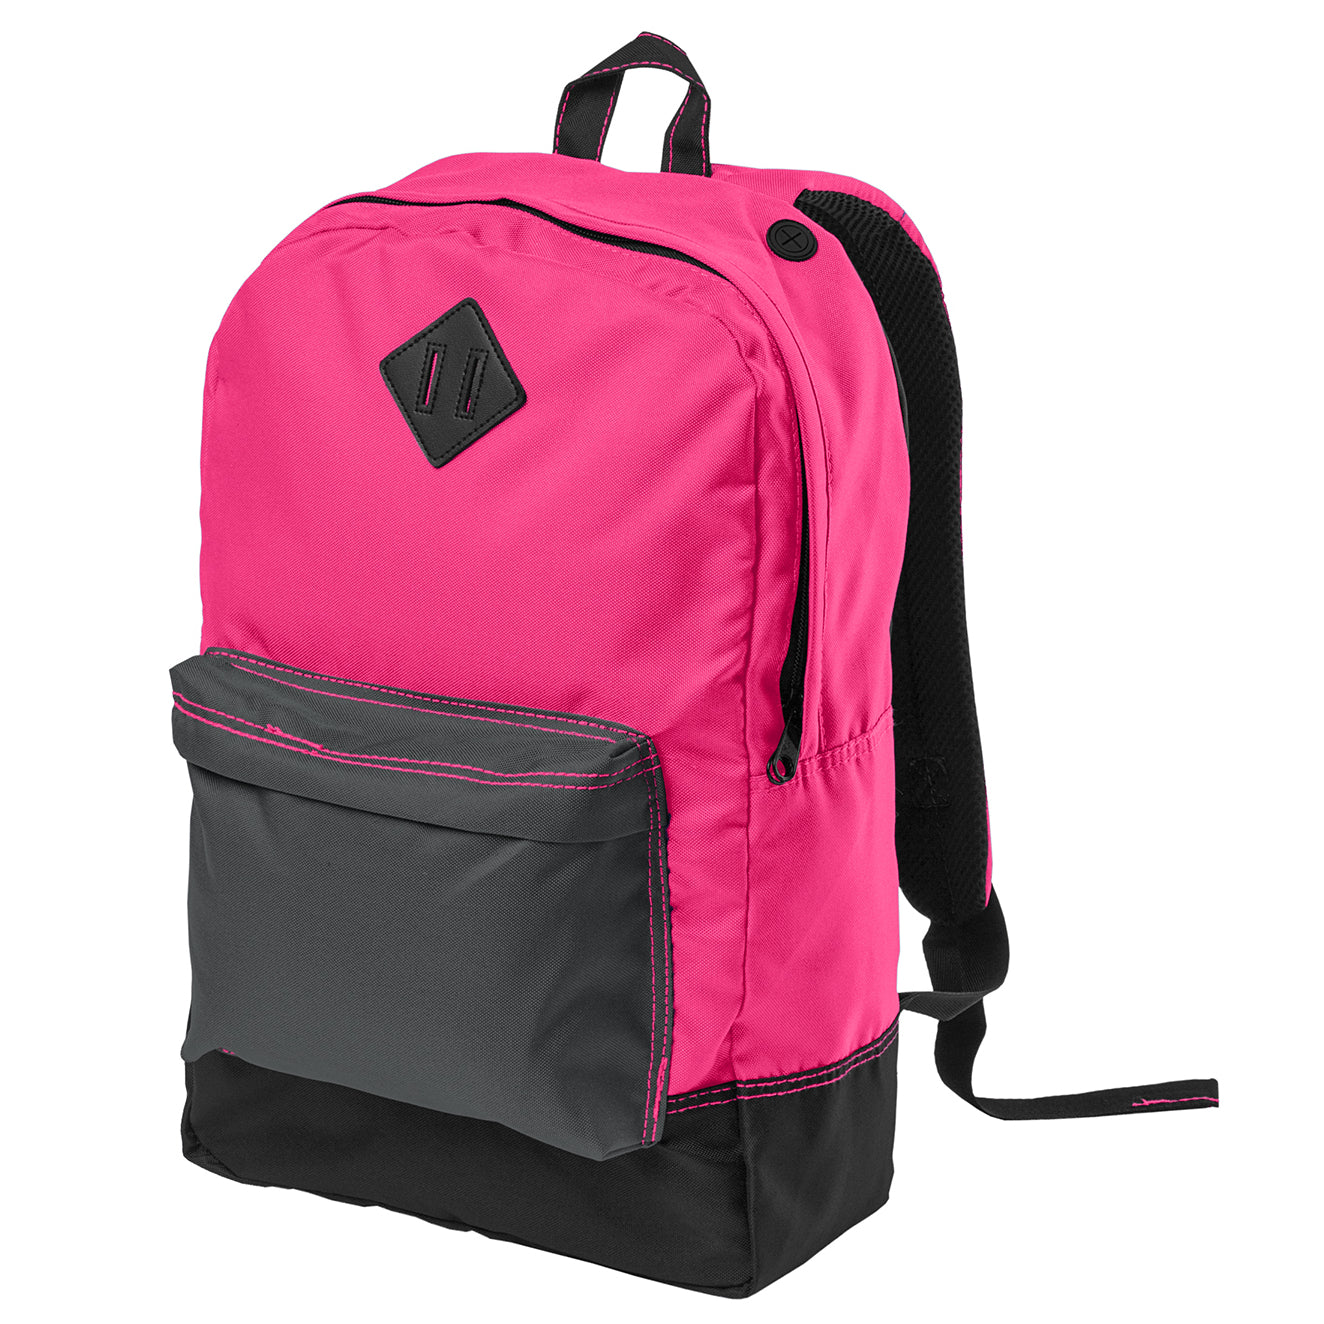 Women's Retro Backpack - Neon Pink